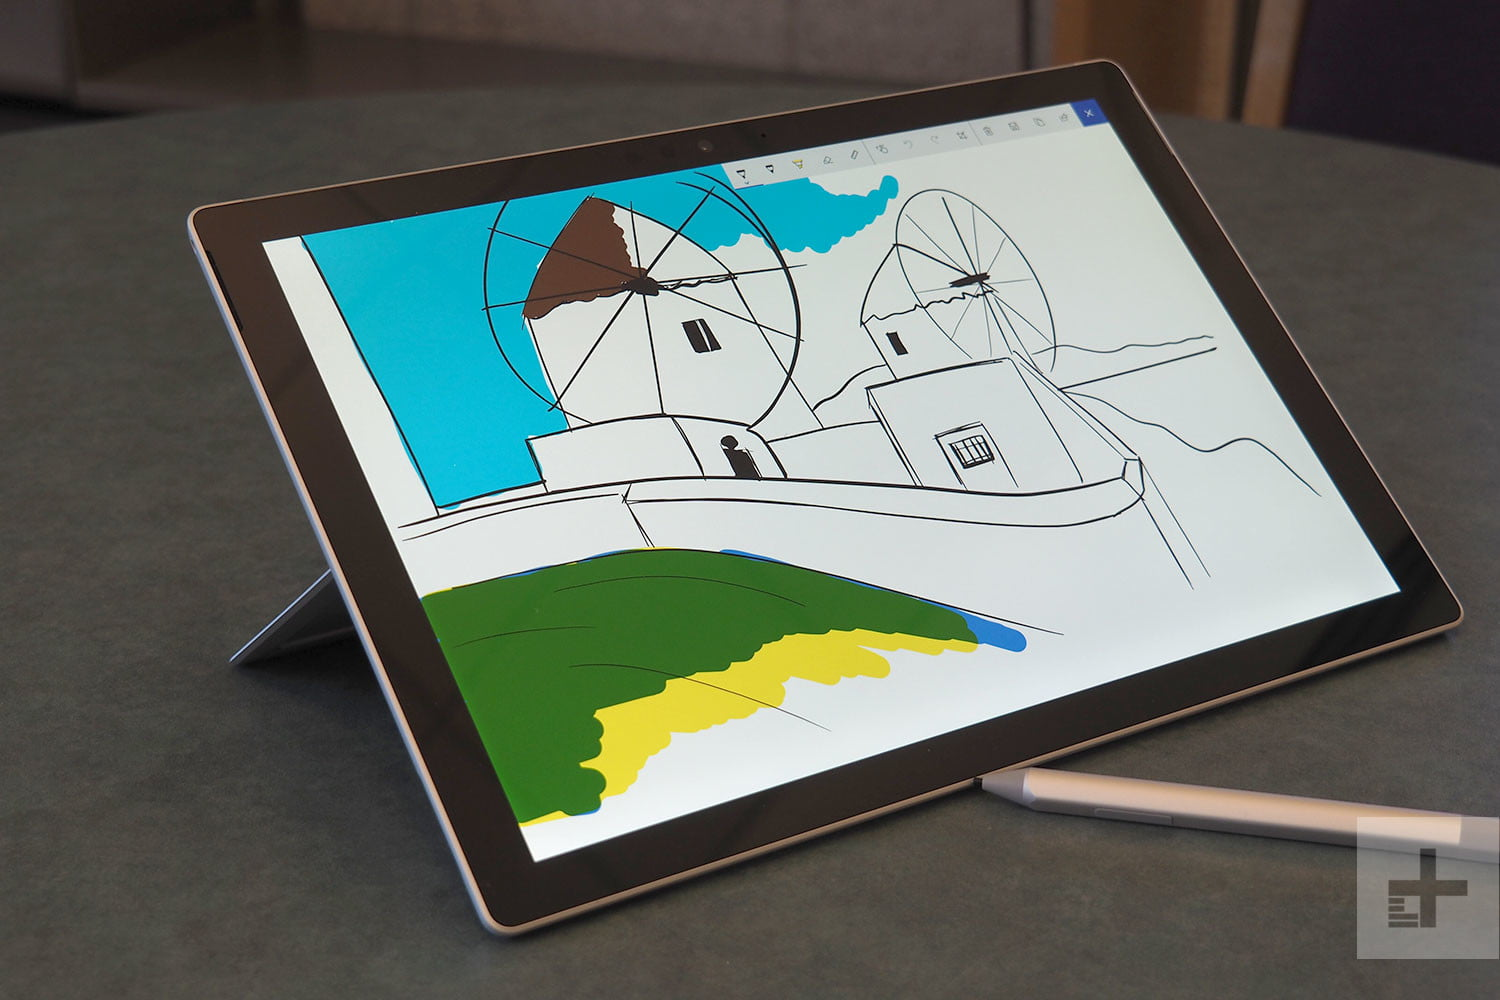 Office Depot Just Slashed The Price Of A Surface Pro Core I5 Model In Half